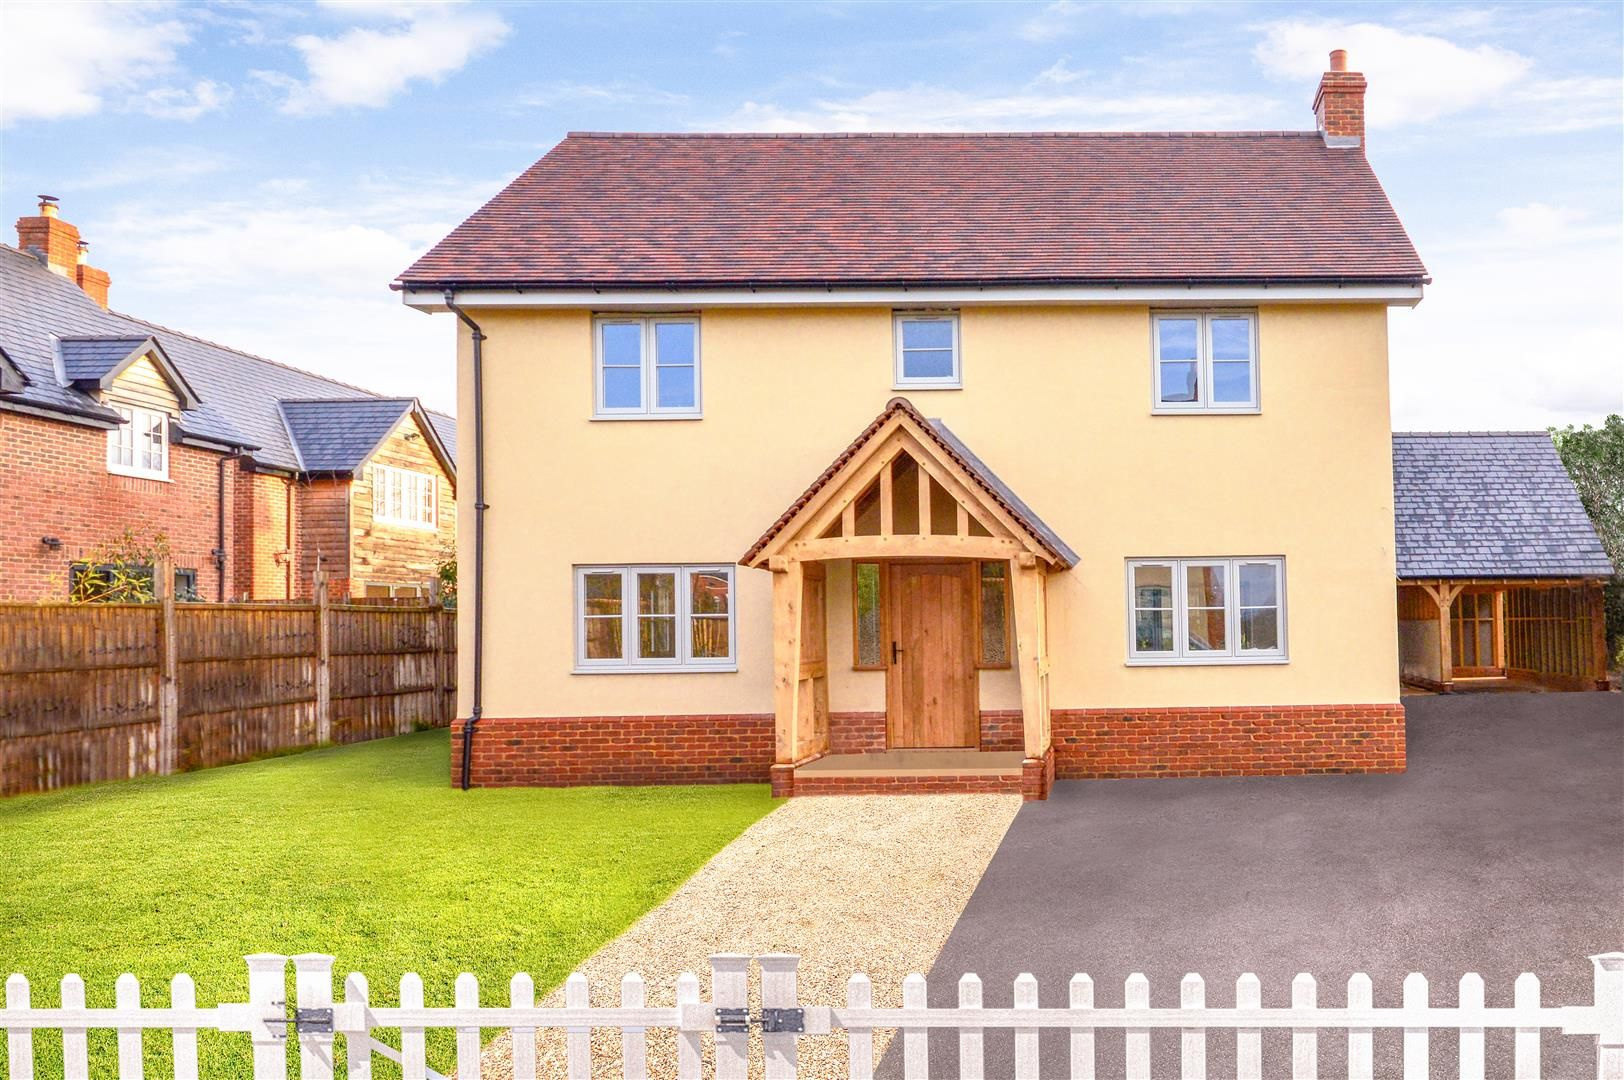 3 bed detached for sale in Marden  - Property Image 1